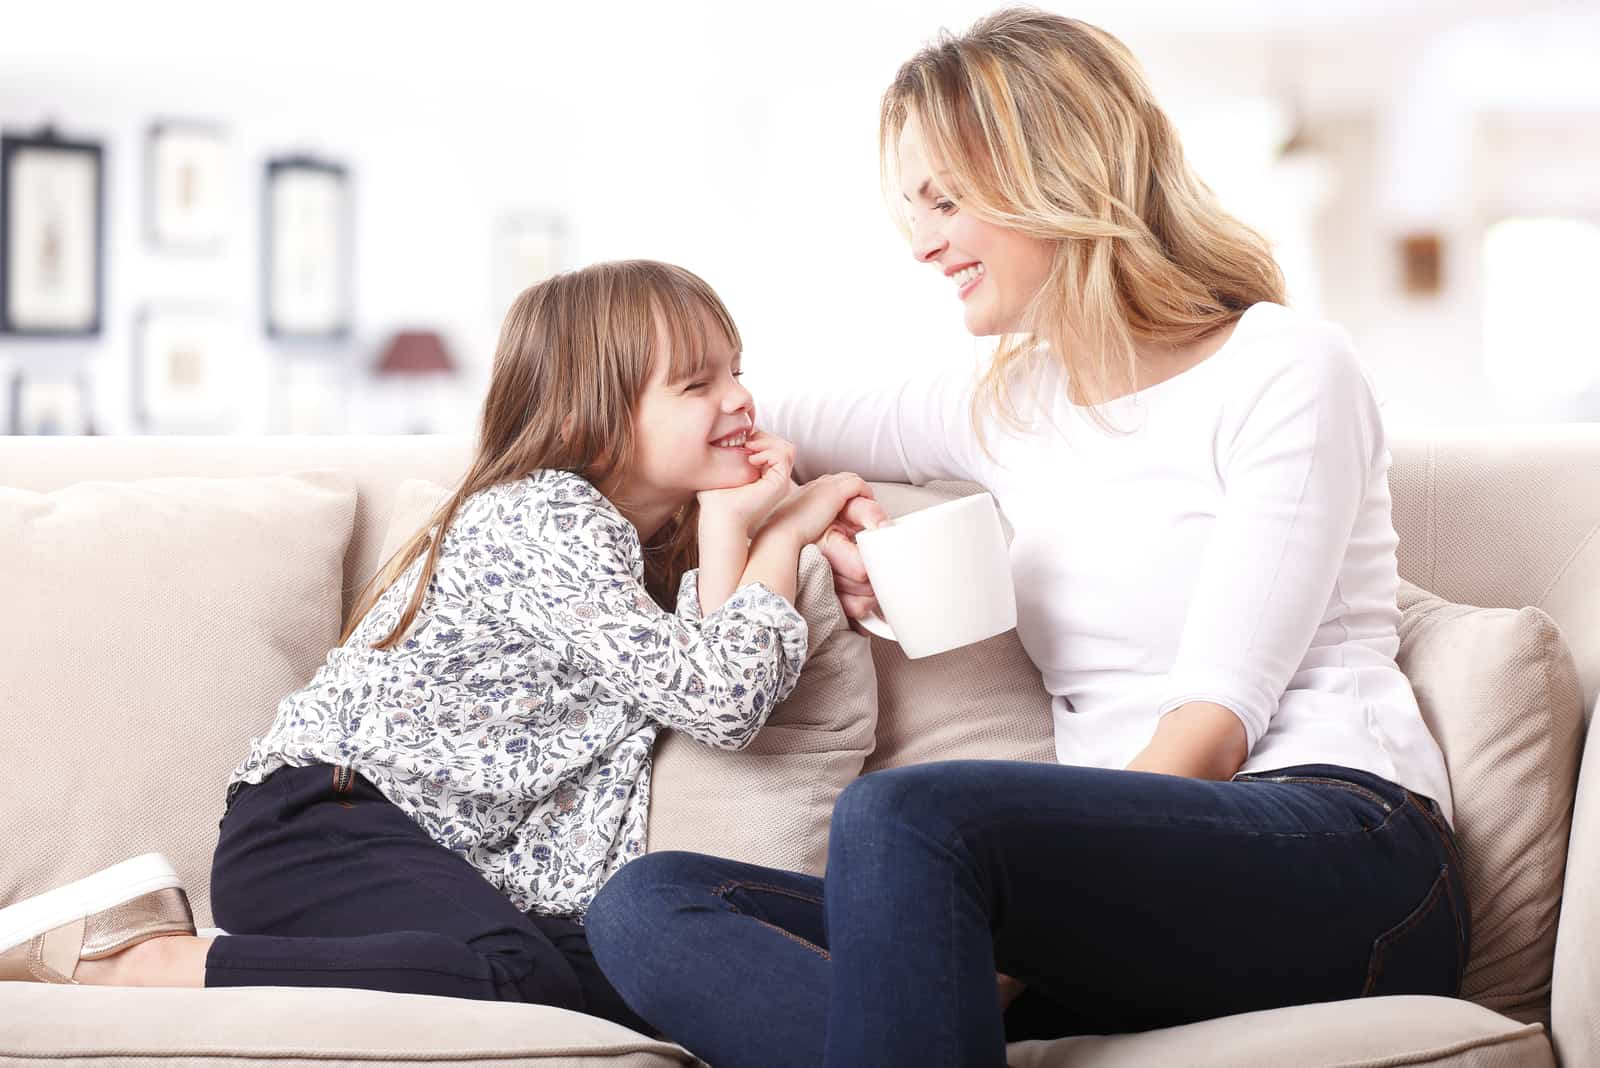 daughter and mom sit on the couch and talk